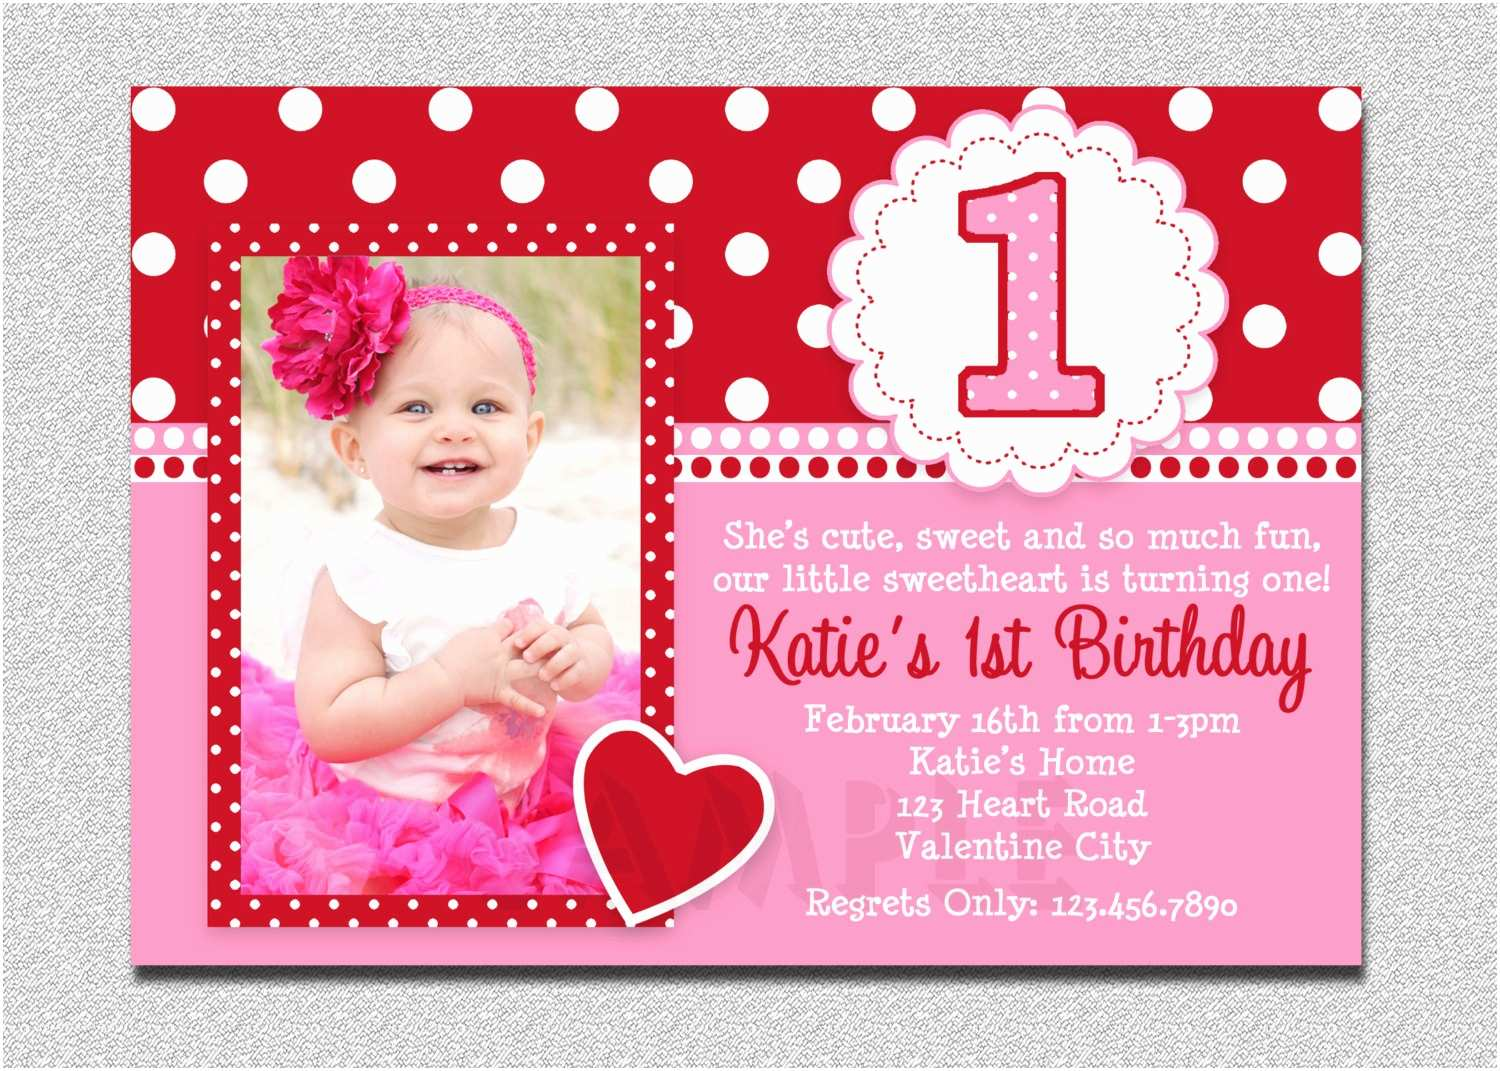 Birthday Invitations First Birthday Party Invitation Ideas – Bagvania Free